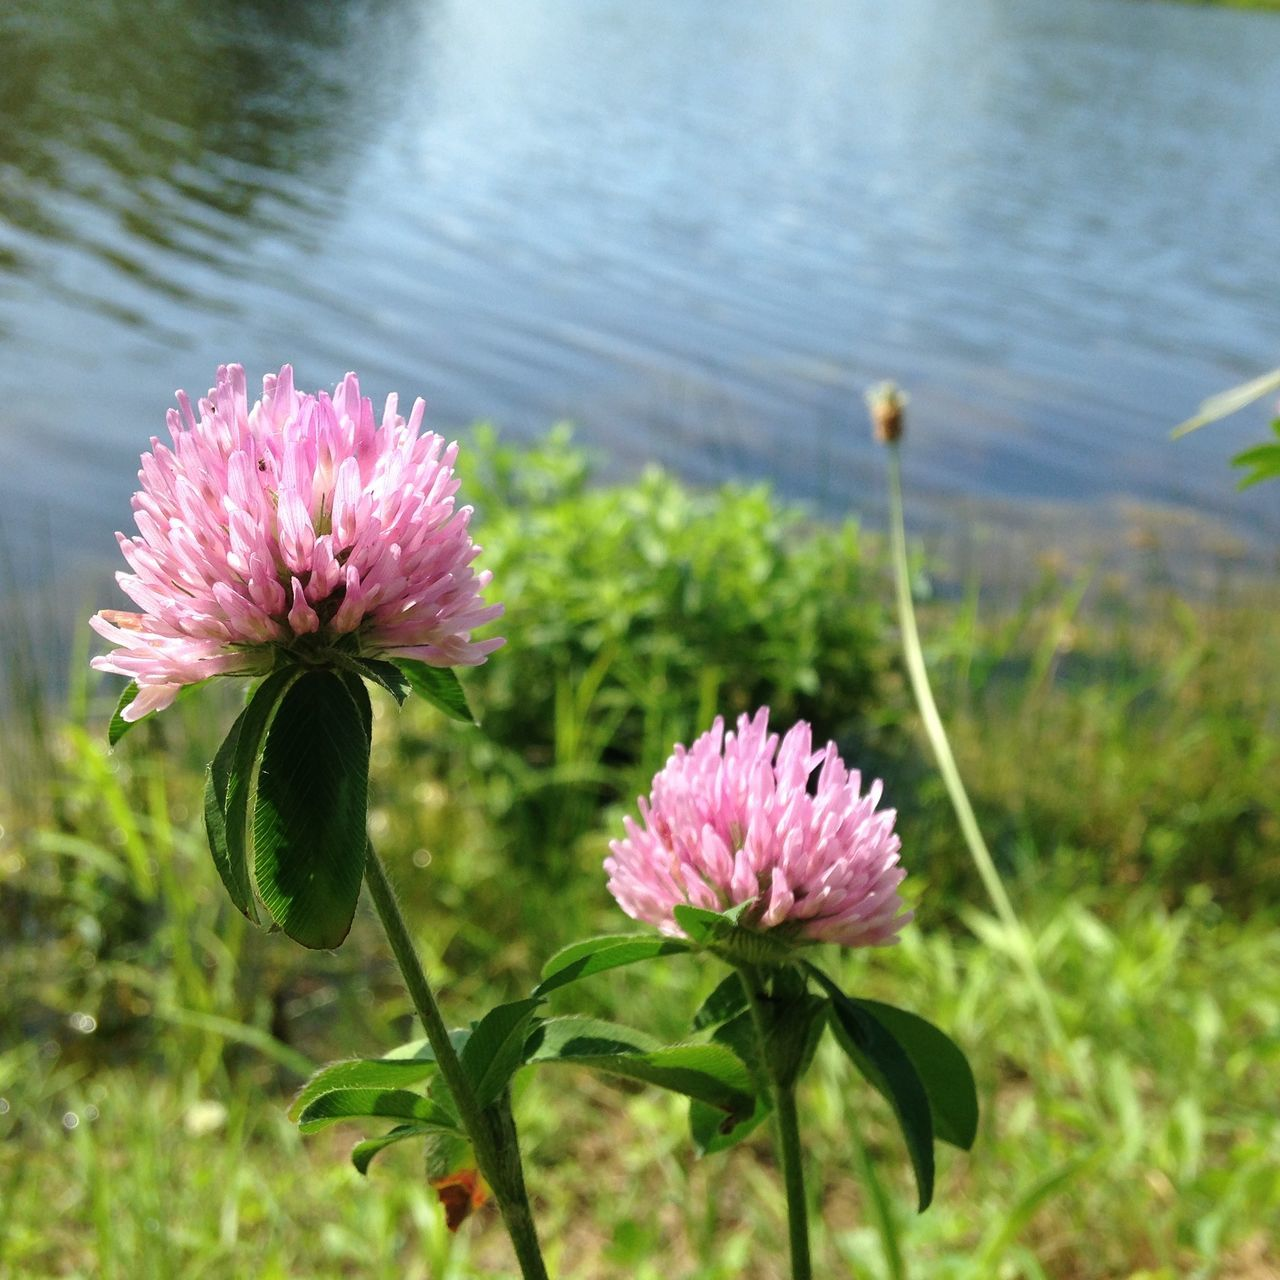 flower, nature, beauty in nature, fragility, petal, growth, pink color, flower head, blooming, plant, no people, freshness, day, outdoors, focus on foreground, close-up, water, purple, green color, lake, thistle, eastern purple coneflower, crocus